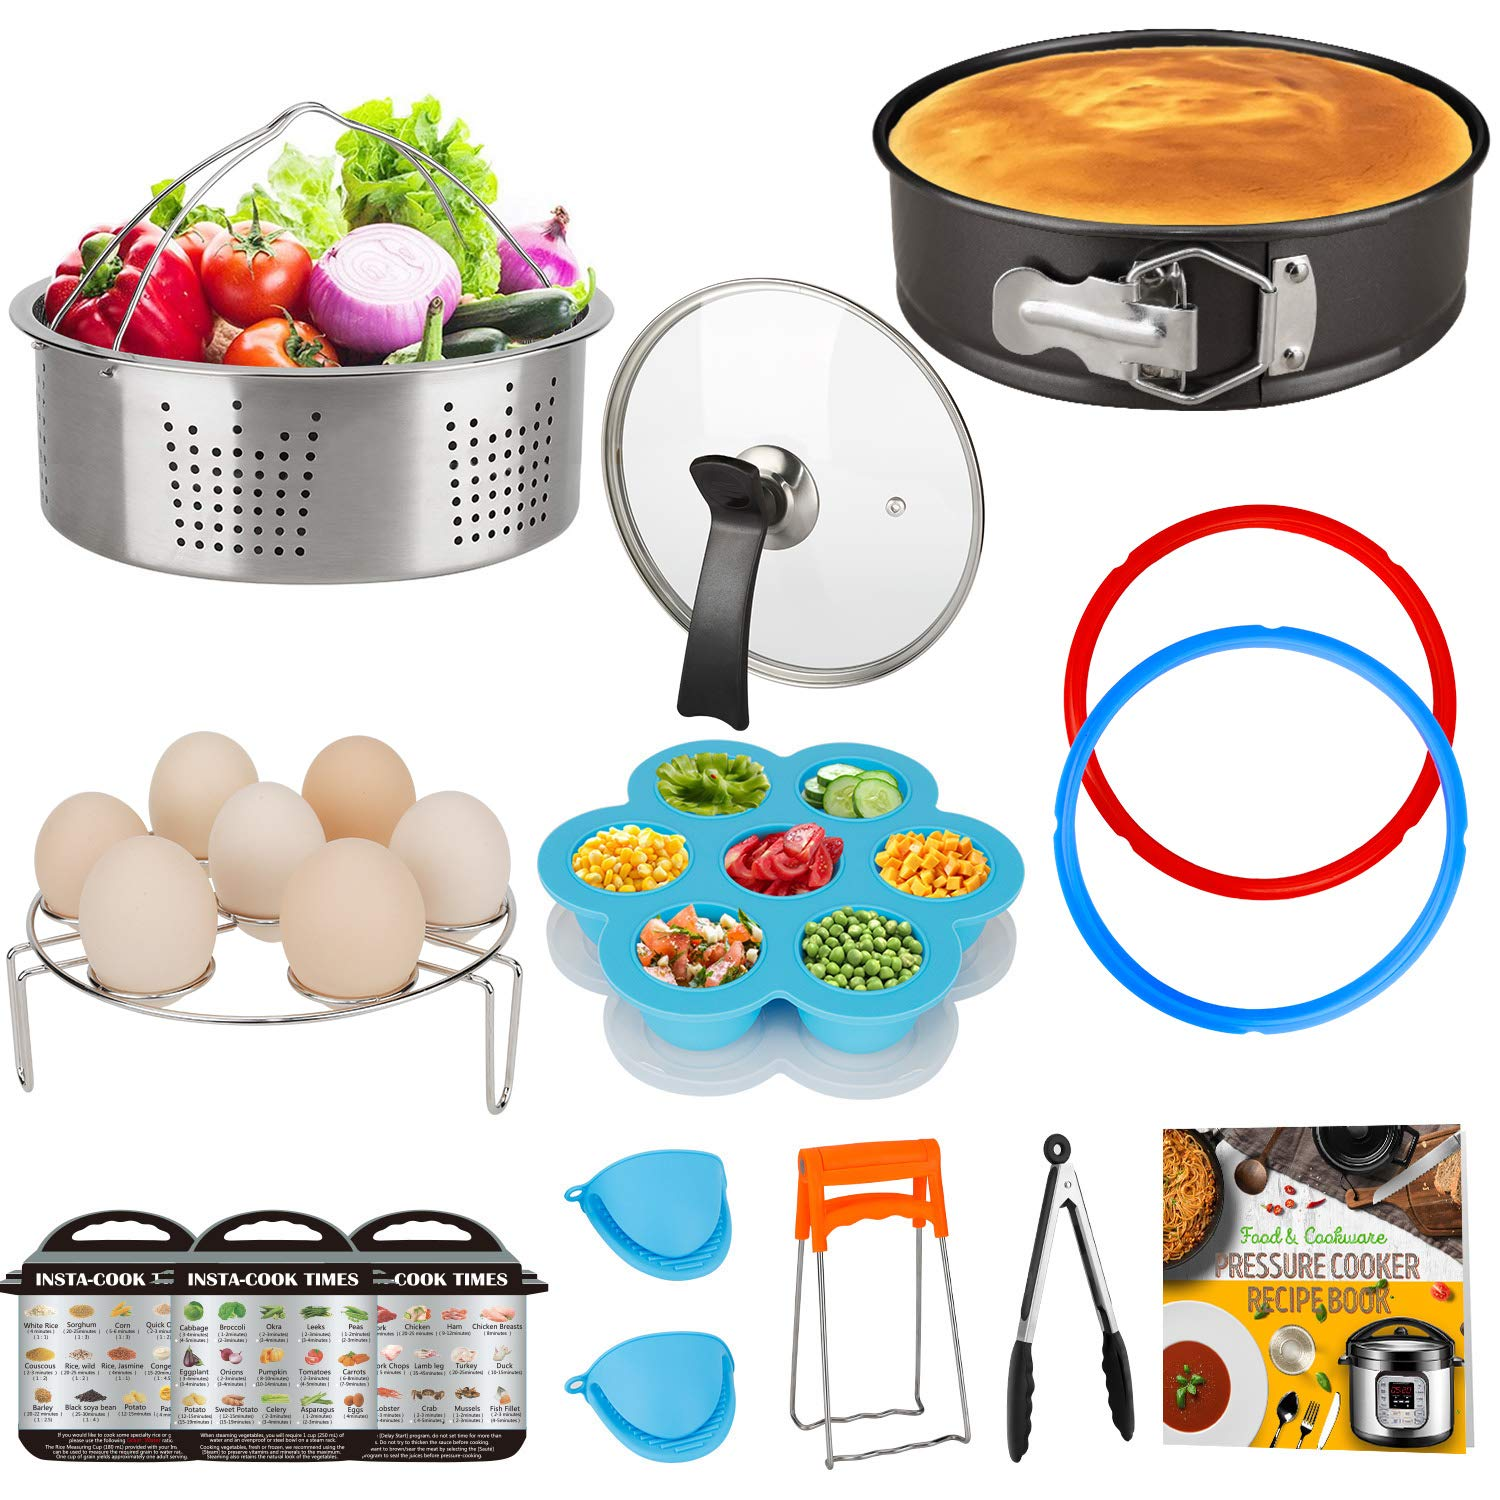 Accessories Set Compatible with 8 Quart Instant Pot Only with Sealing Rings, Tempered Glass Lid, and Steamer Basket.